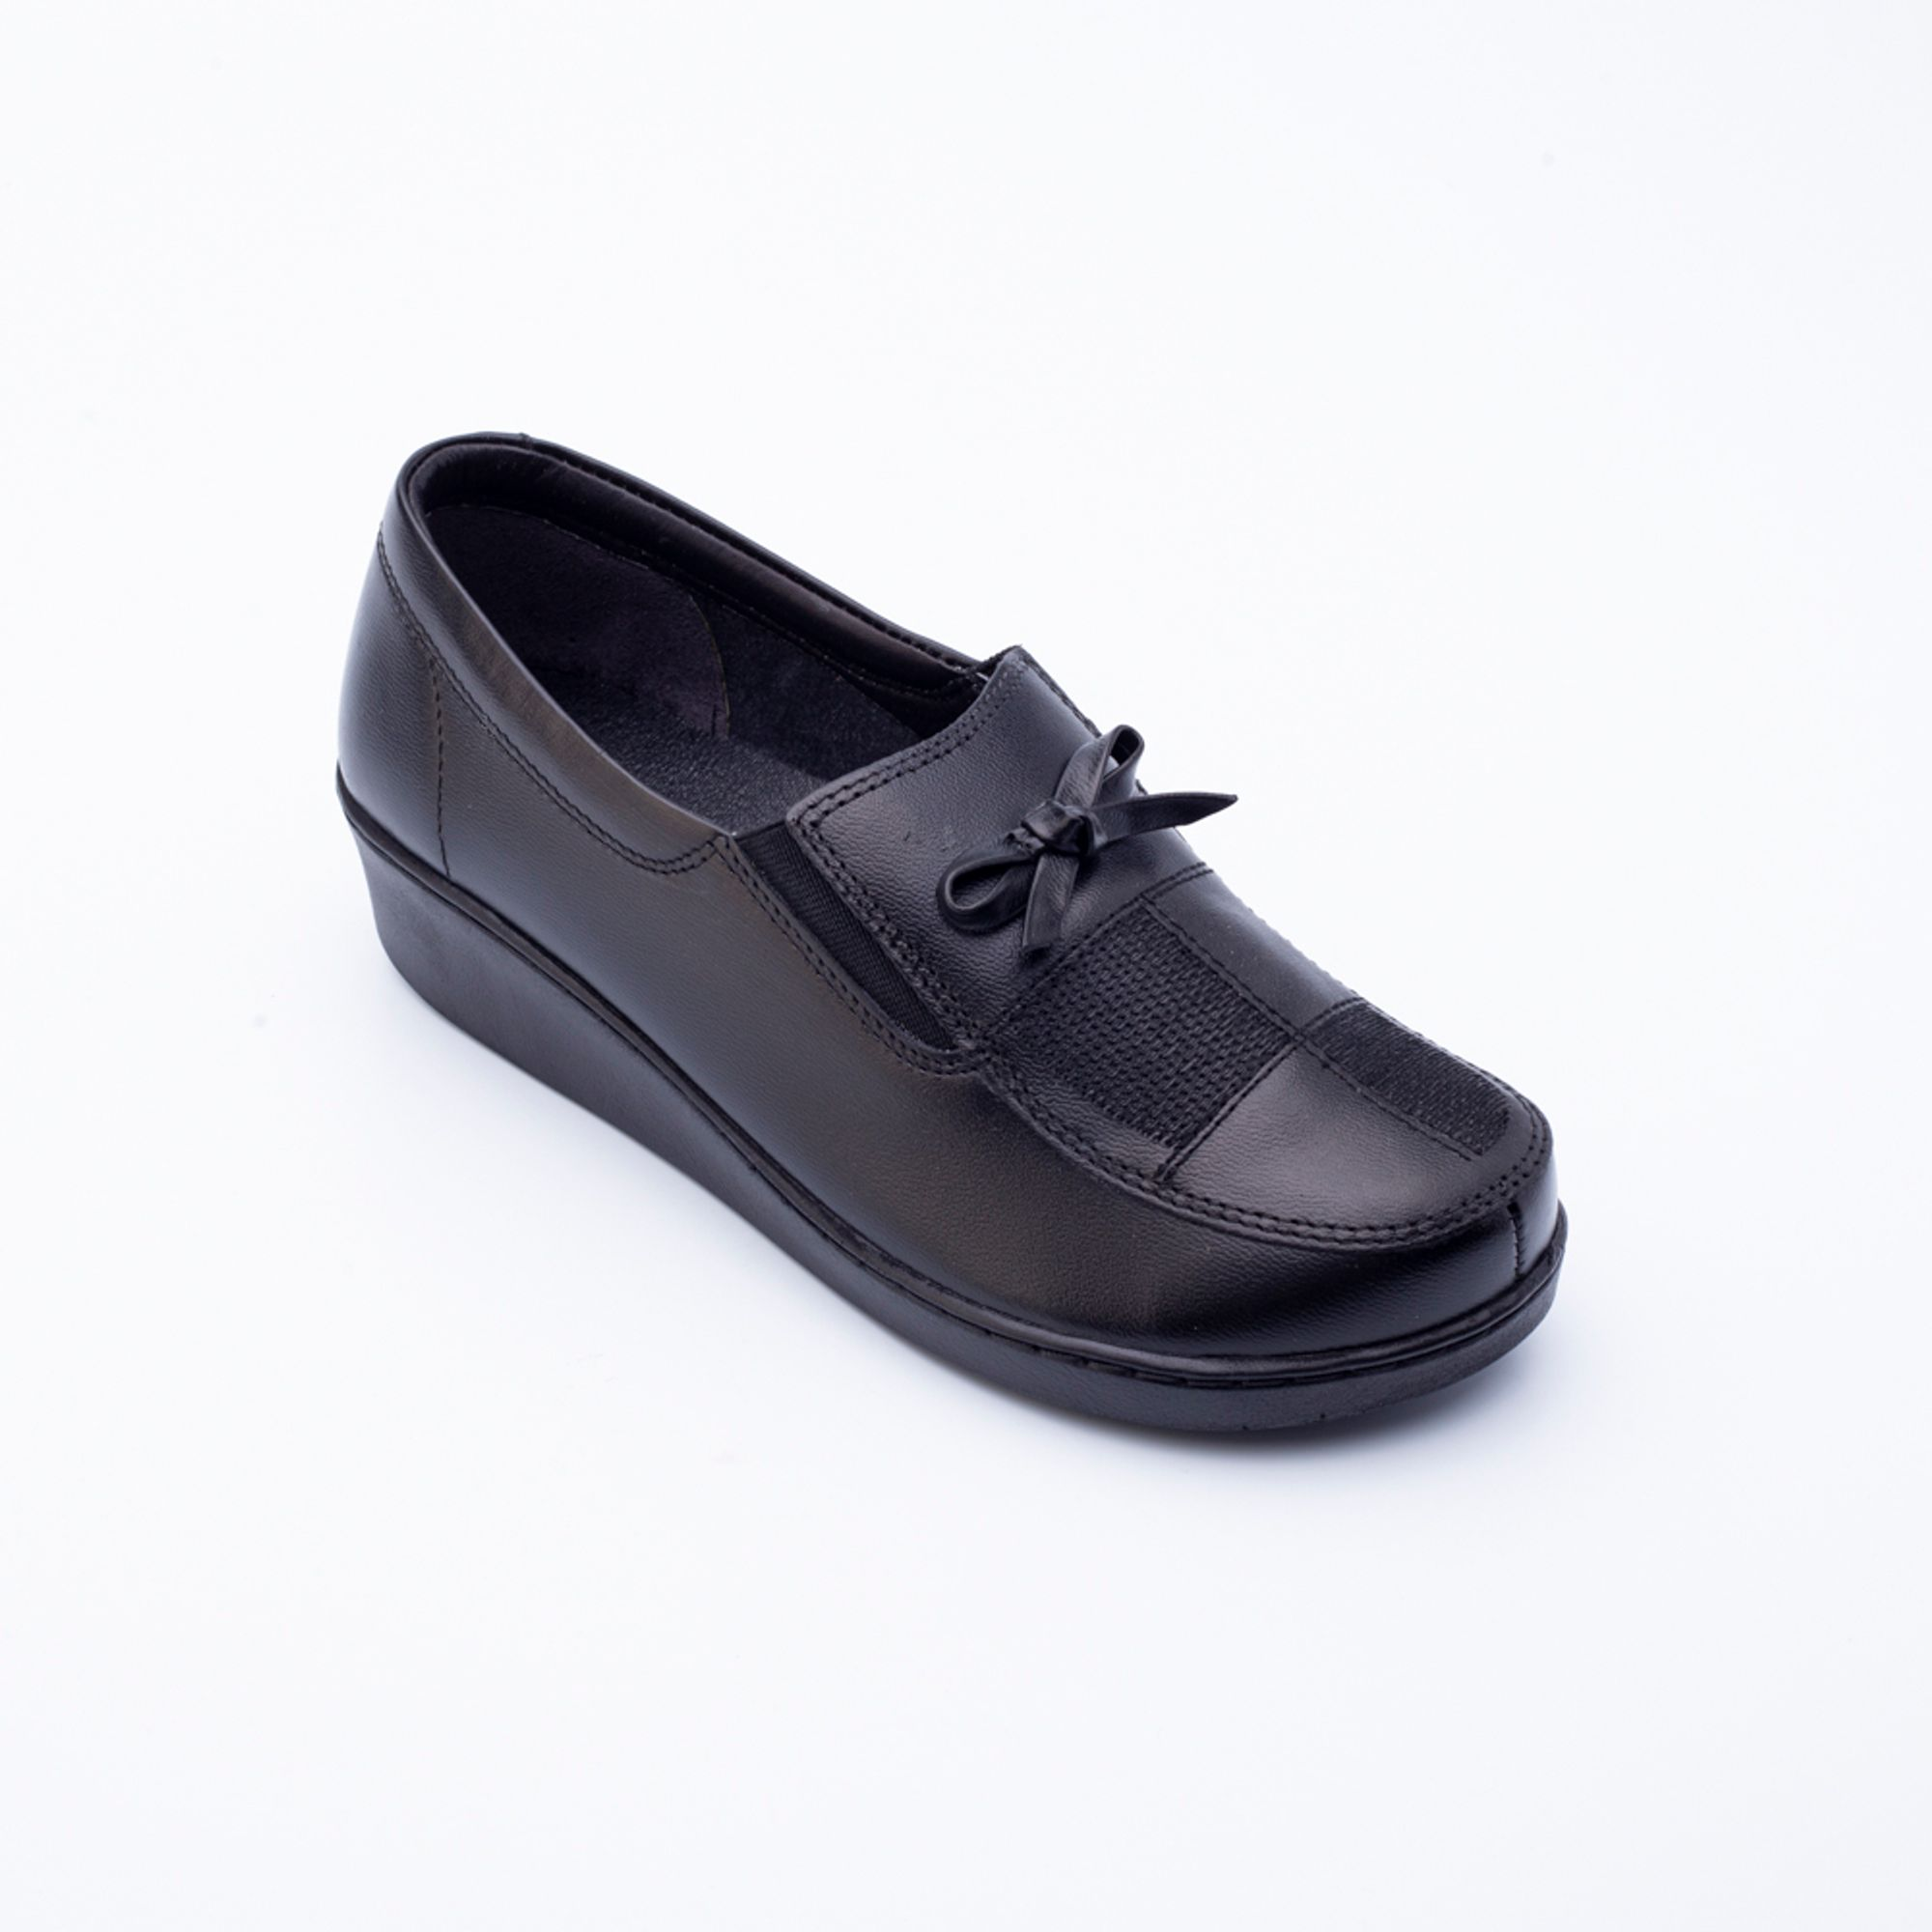 ZAPATOS-FORMALES-ROMULO-MUJER-2435-IN-MC-BS-PL-CU